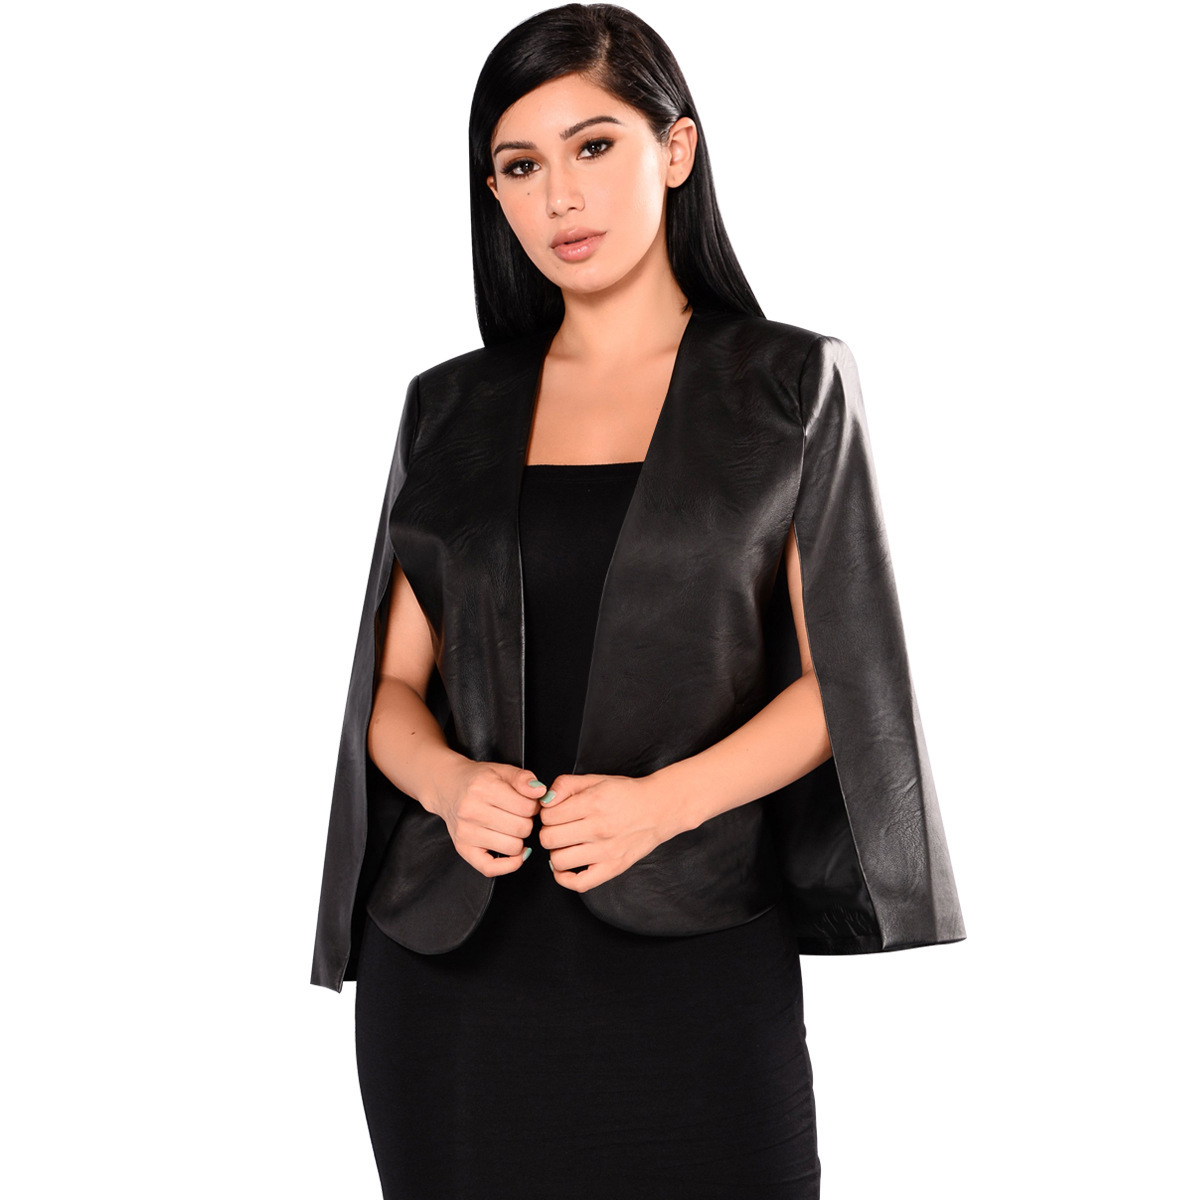 2019 spring European and American women's PU   leather   jacket new fashion cloak jacket nightclub small suit female